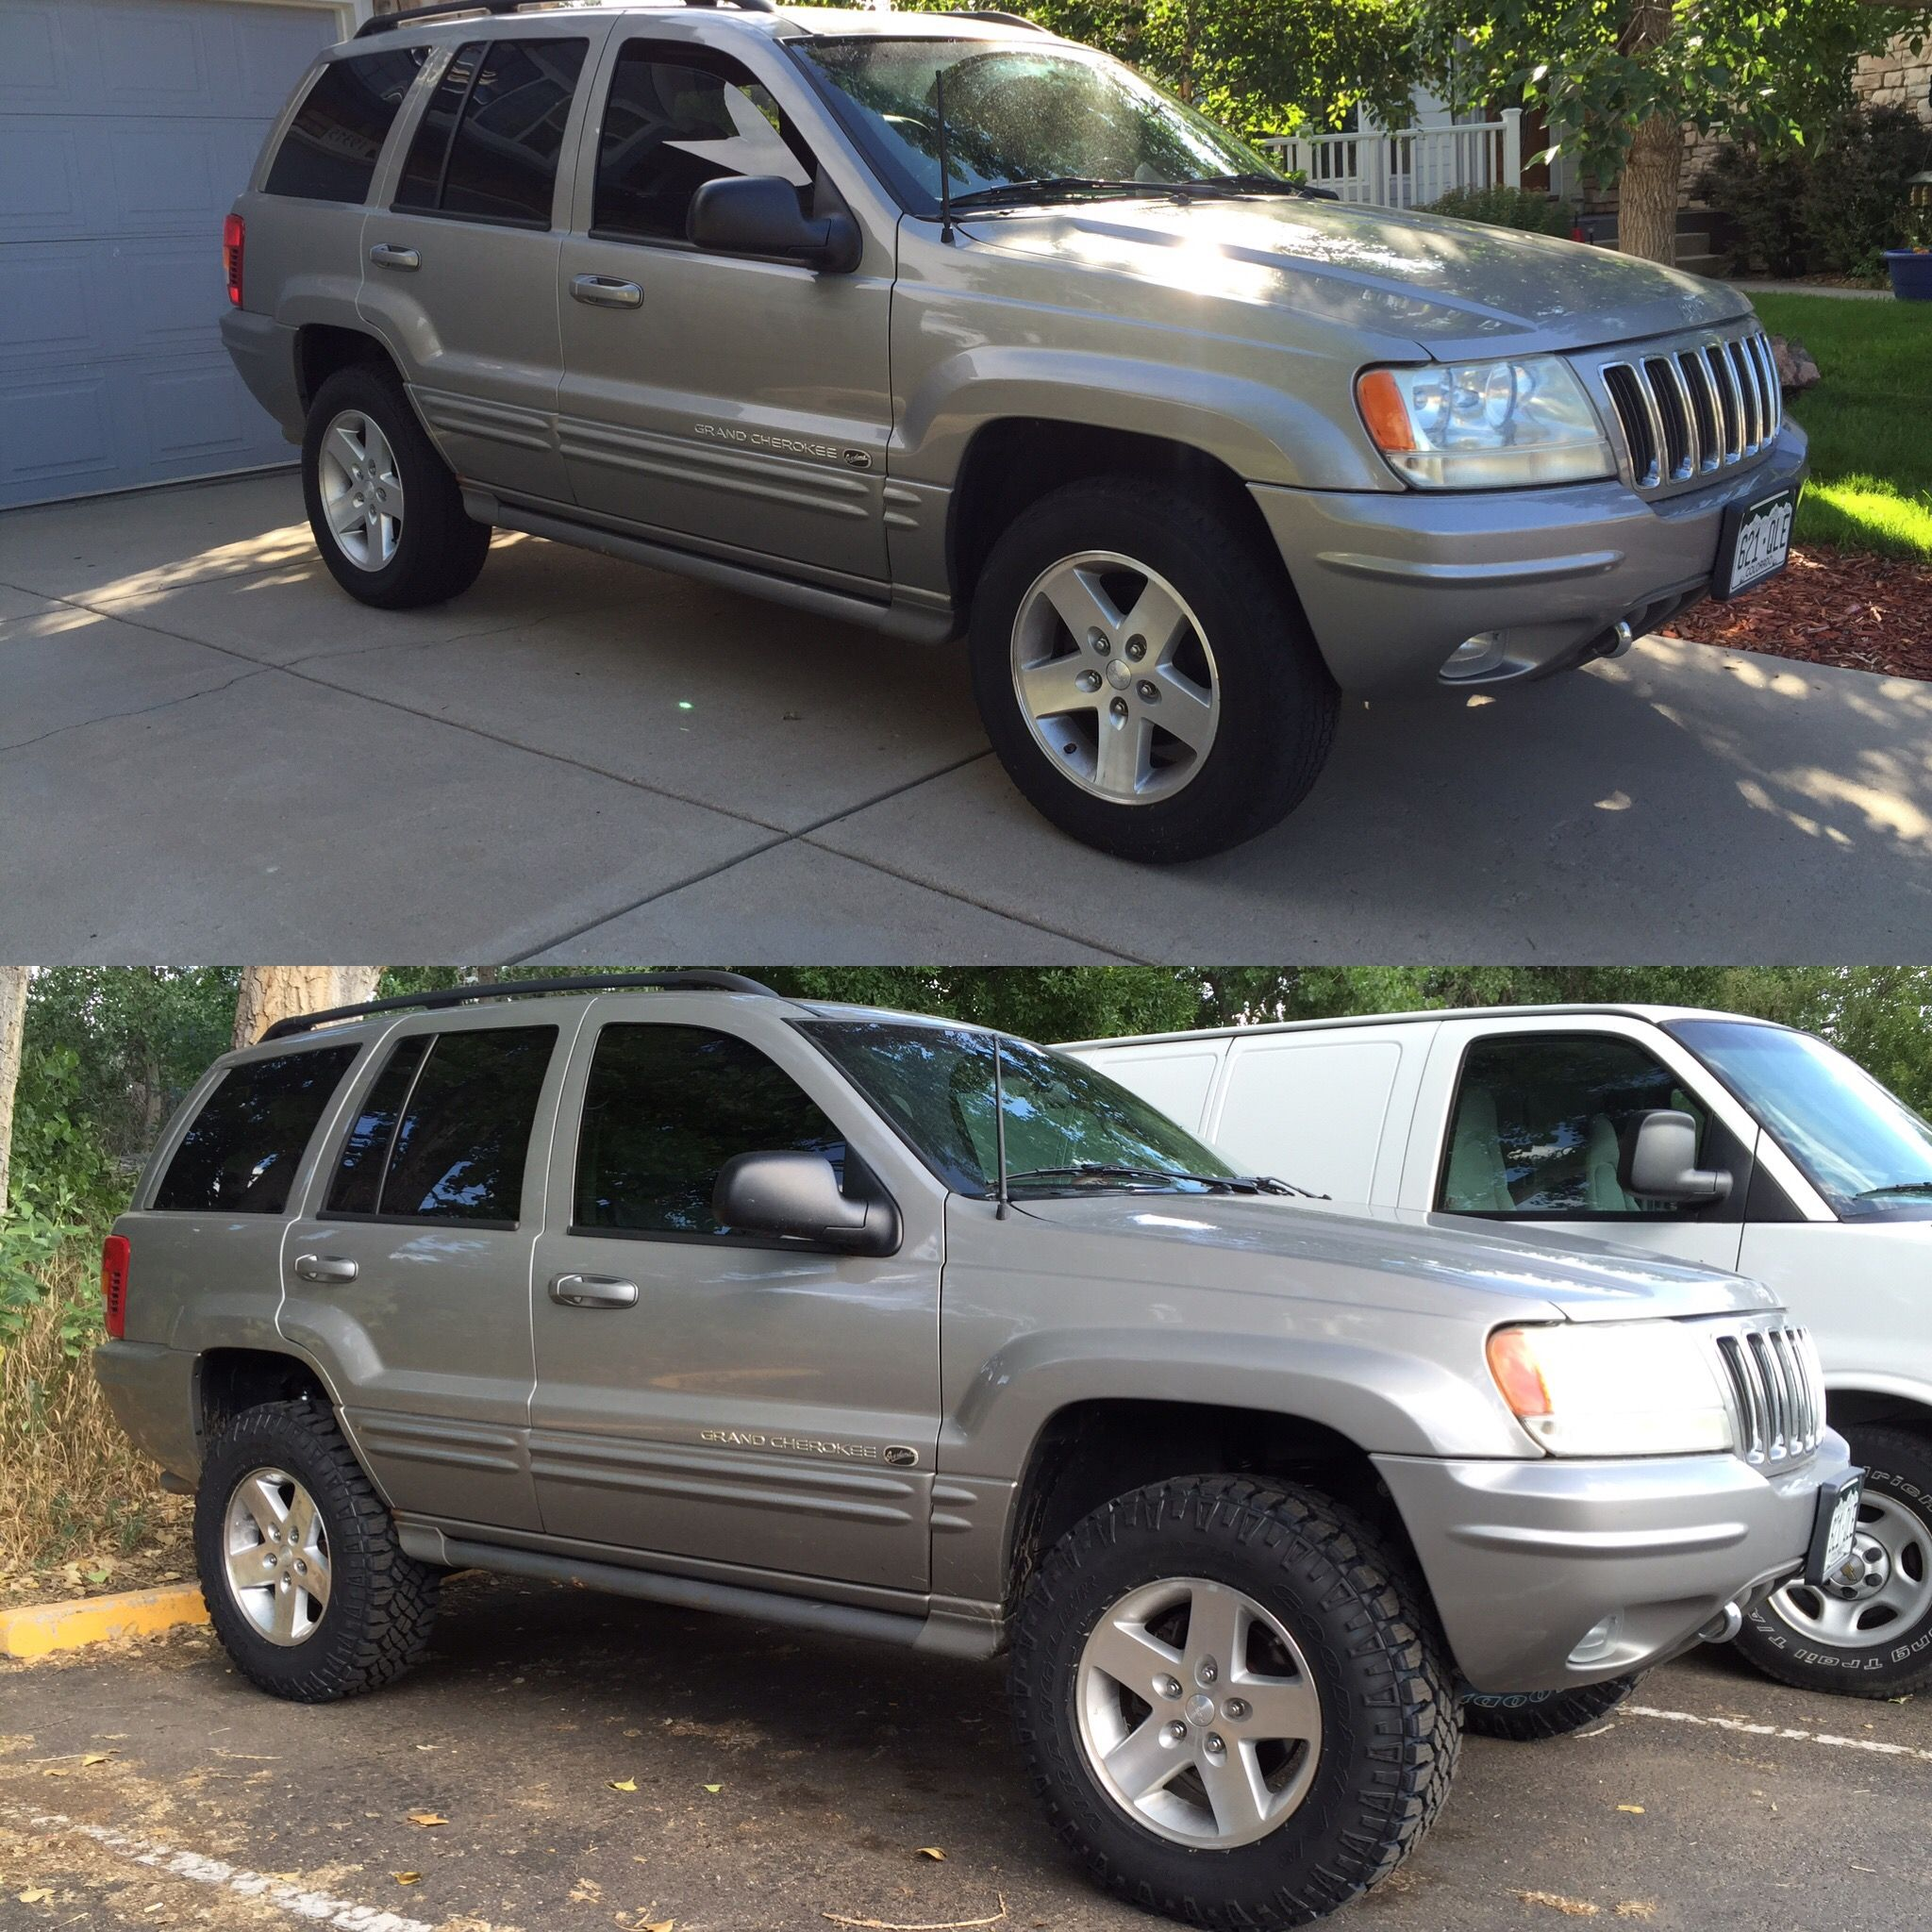 before and after of the lift 3 inch lift 32 inch tires my jeep wj pinterest jeep wj. Black Bedroom Furniture Sets. Home Design Ideas